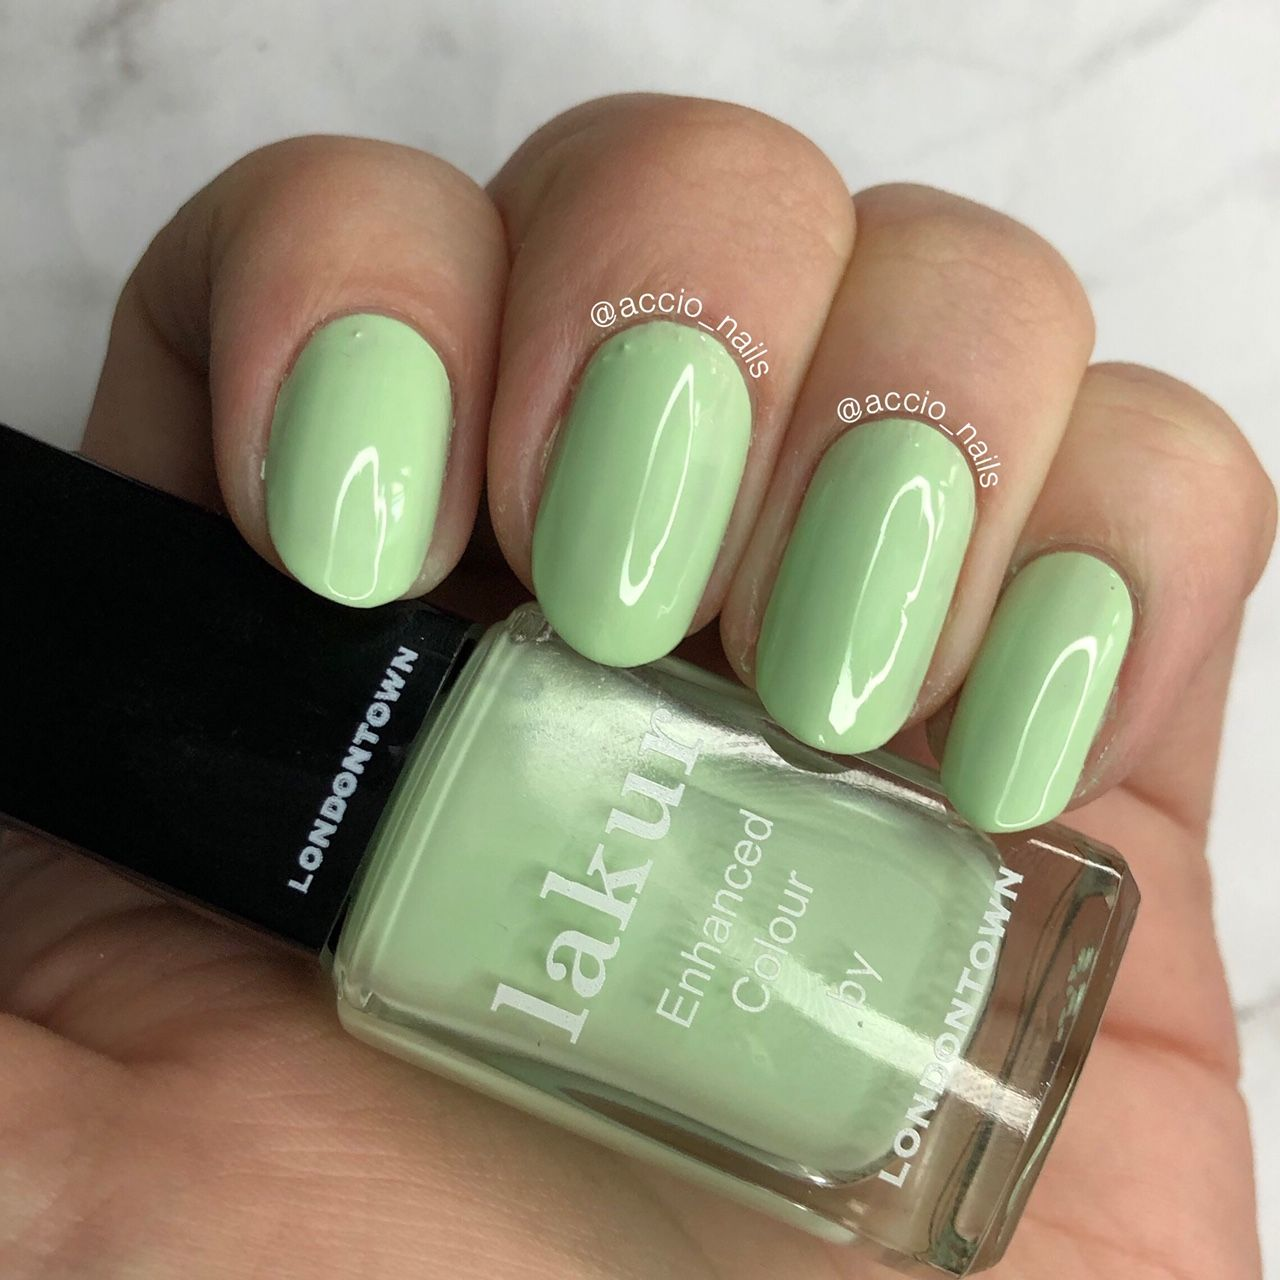 Pin by Lucy De La Torre on Nail ideas Nails, Nail polish